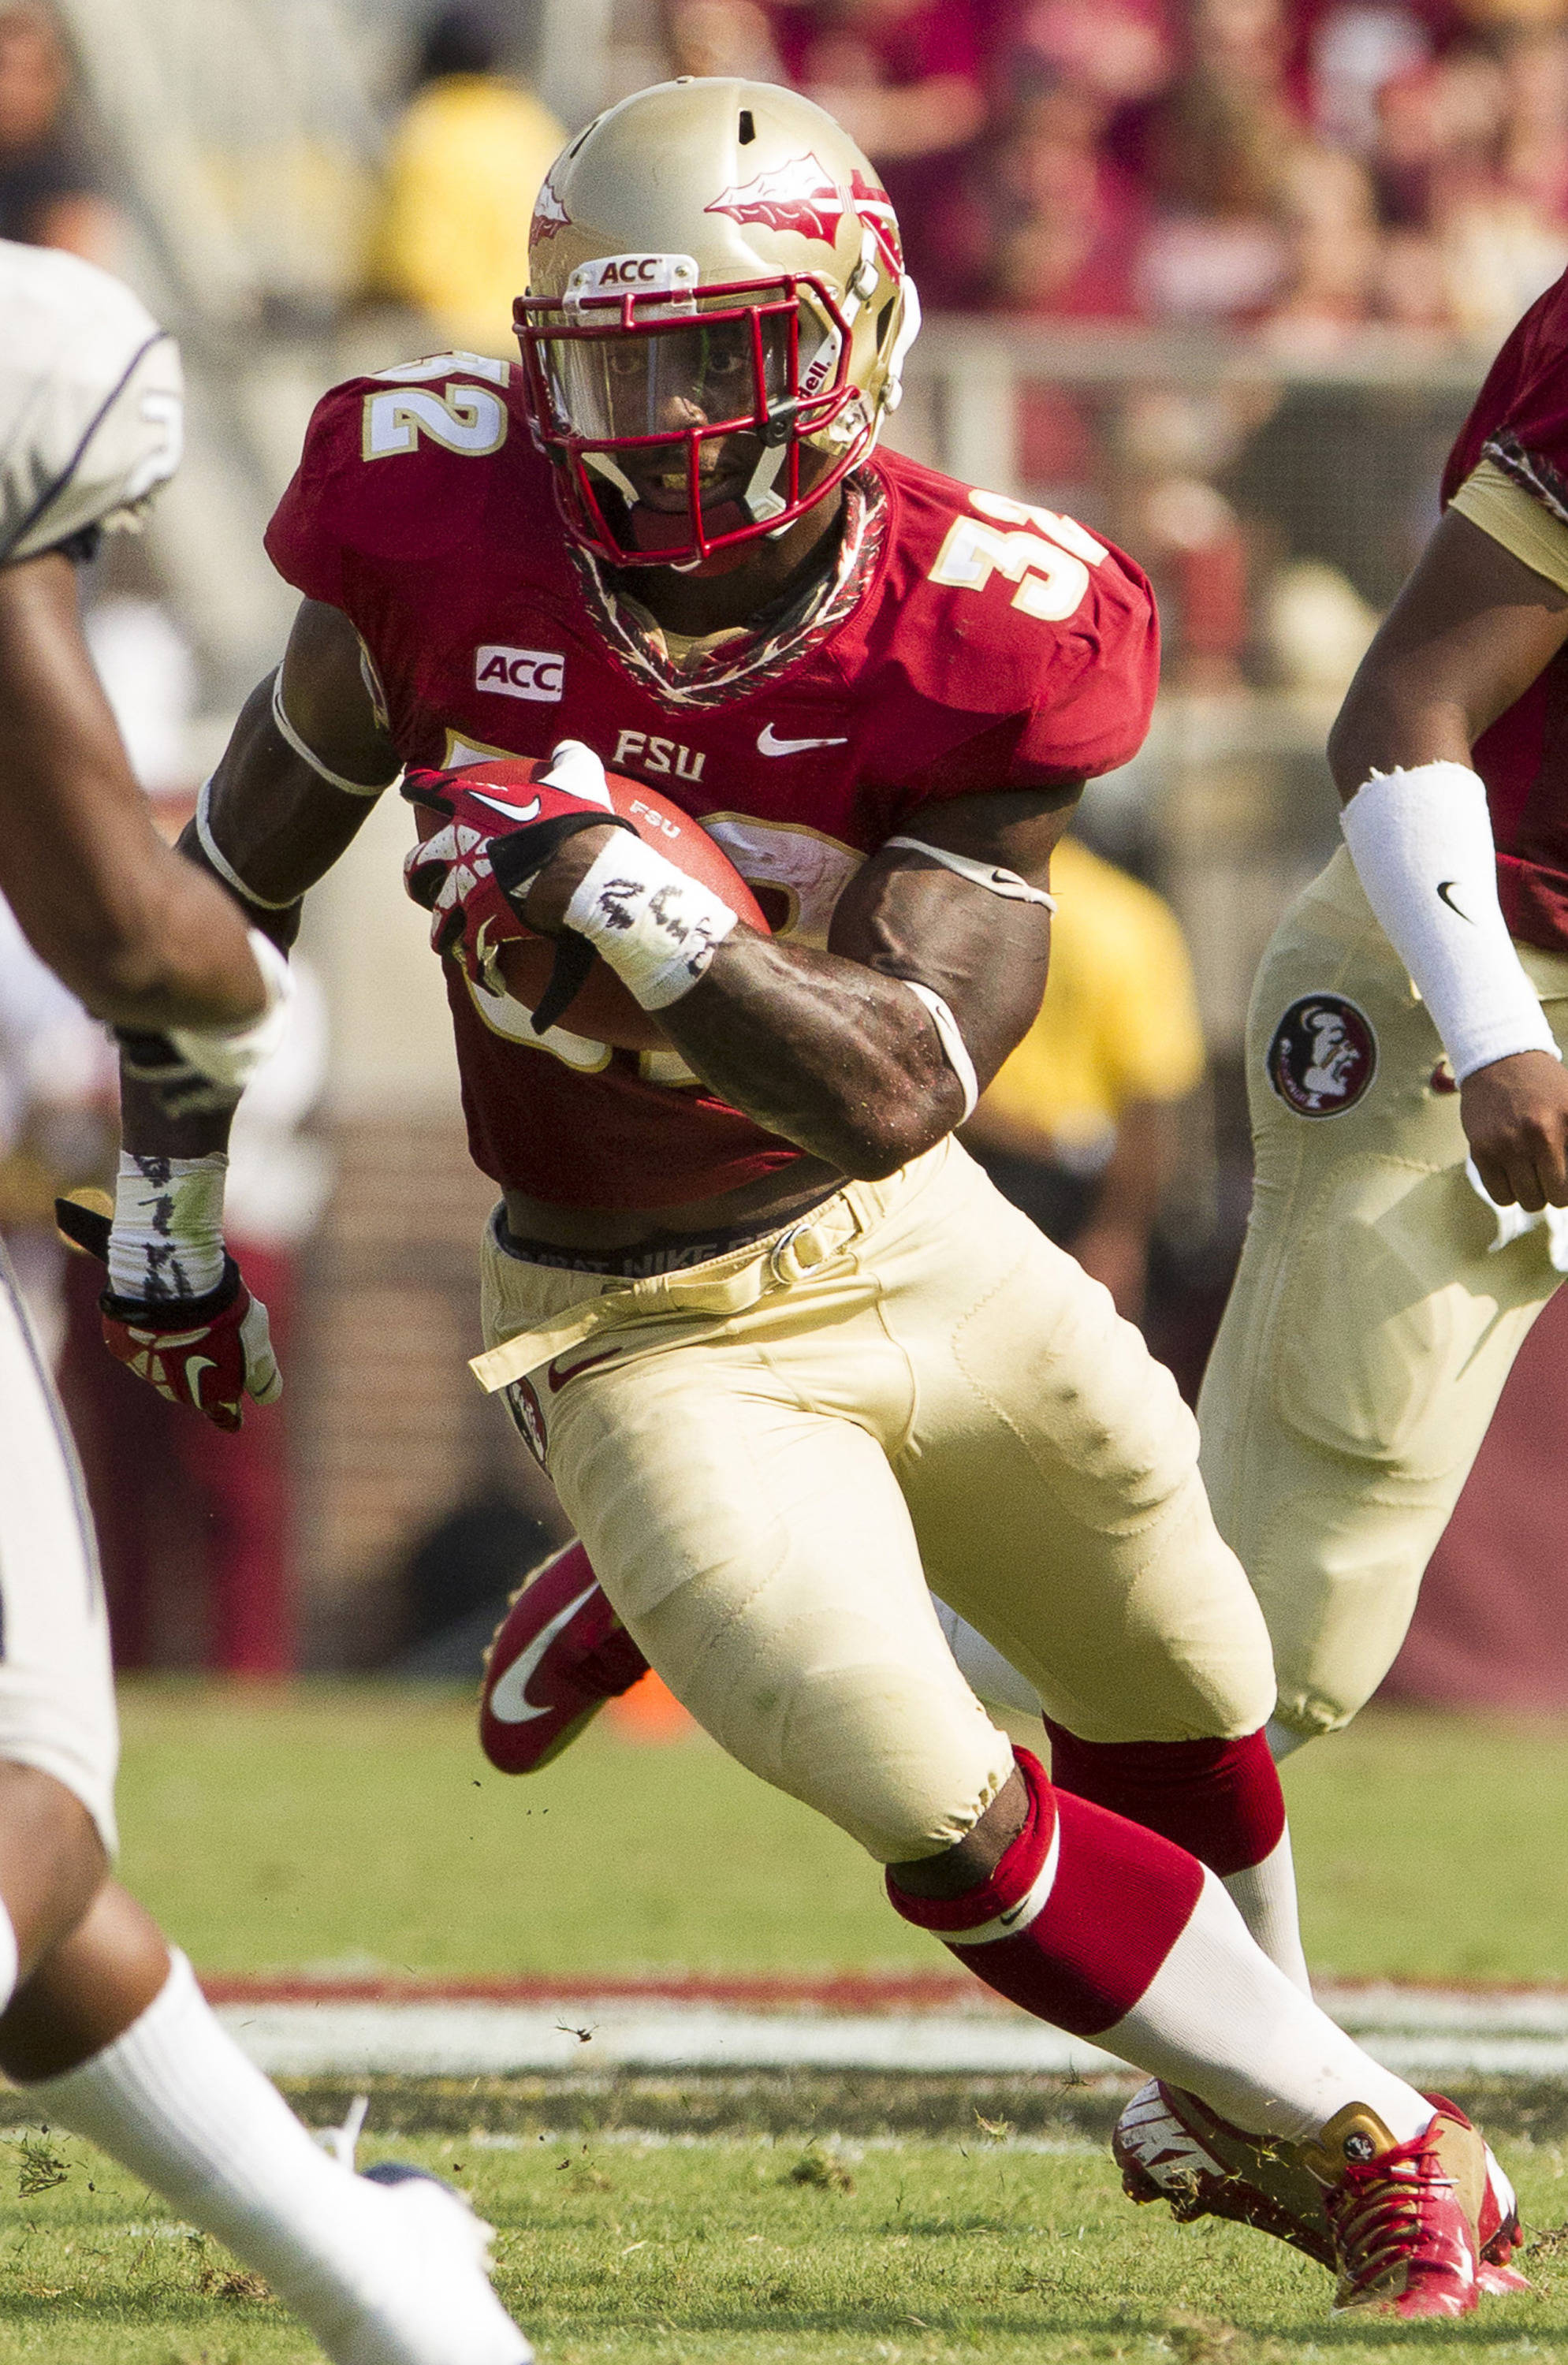 James Wilder Jr. (32) carries the ball during FSU's 62-7 win over Nevada on Saturday, Sept 14, 2013 in Tallahassee, Fla.